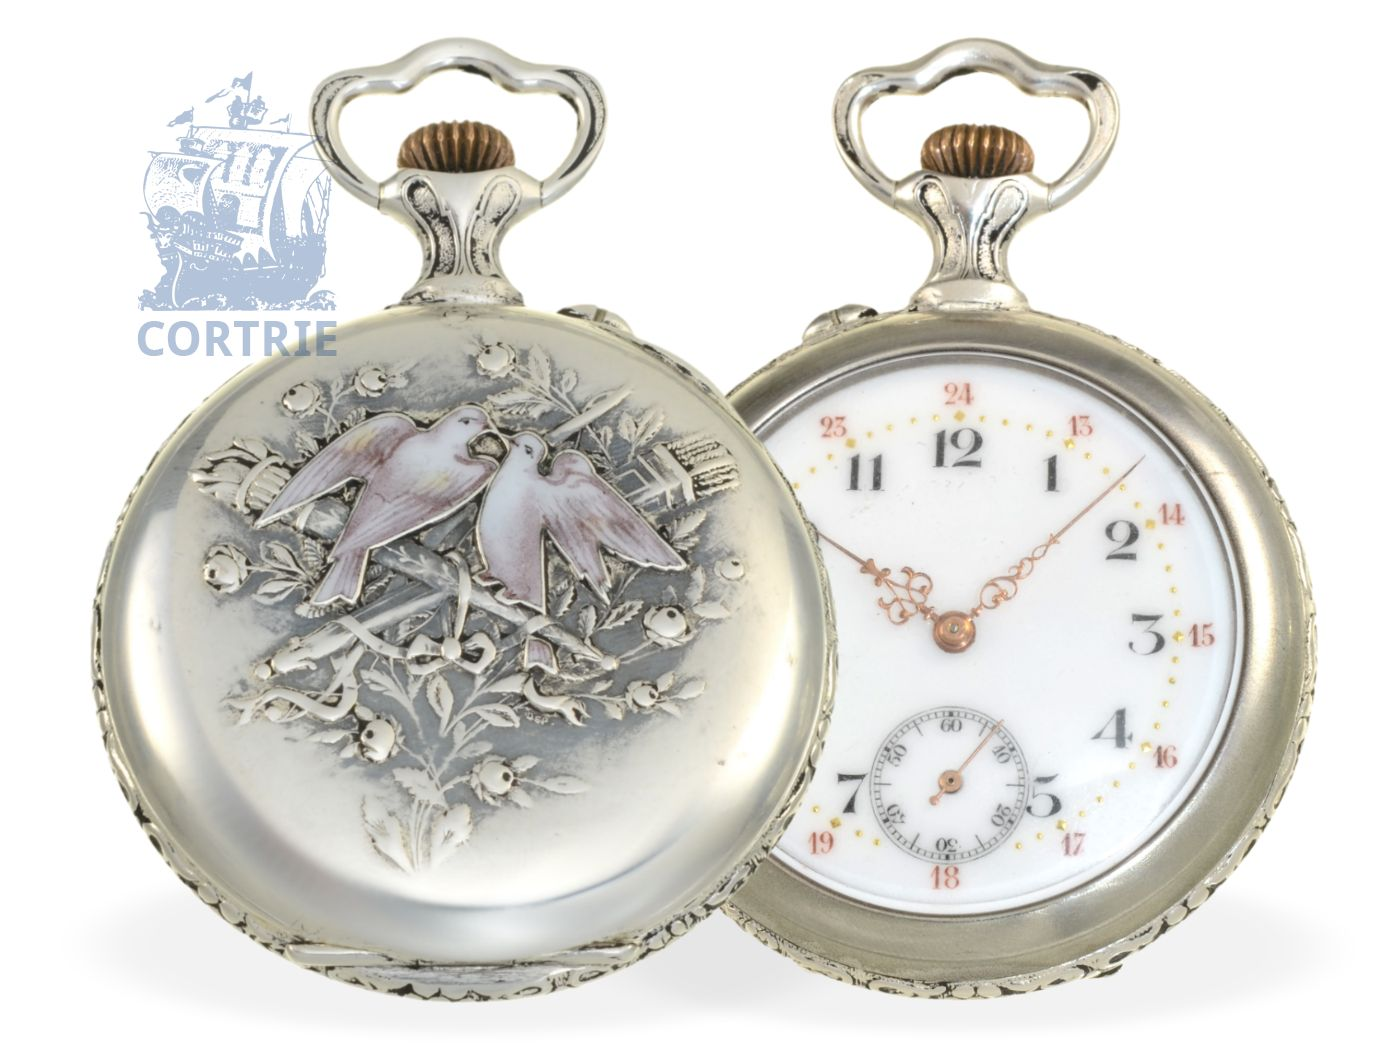 Pocket watch: very rare and beautiful Art Nouveau gentlemen's watch, silver/enamel case, G. Tribaudeau de Besancon No. 90283-